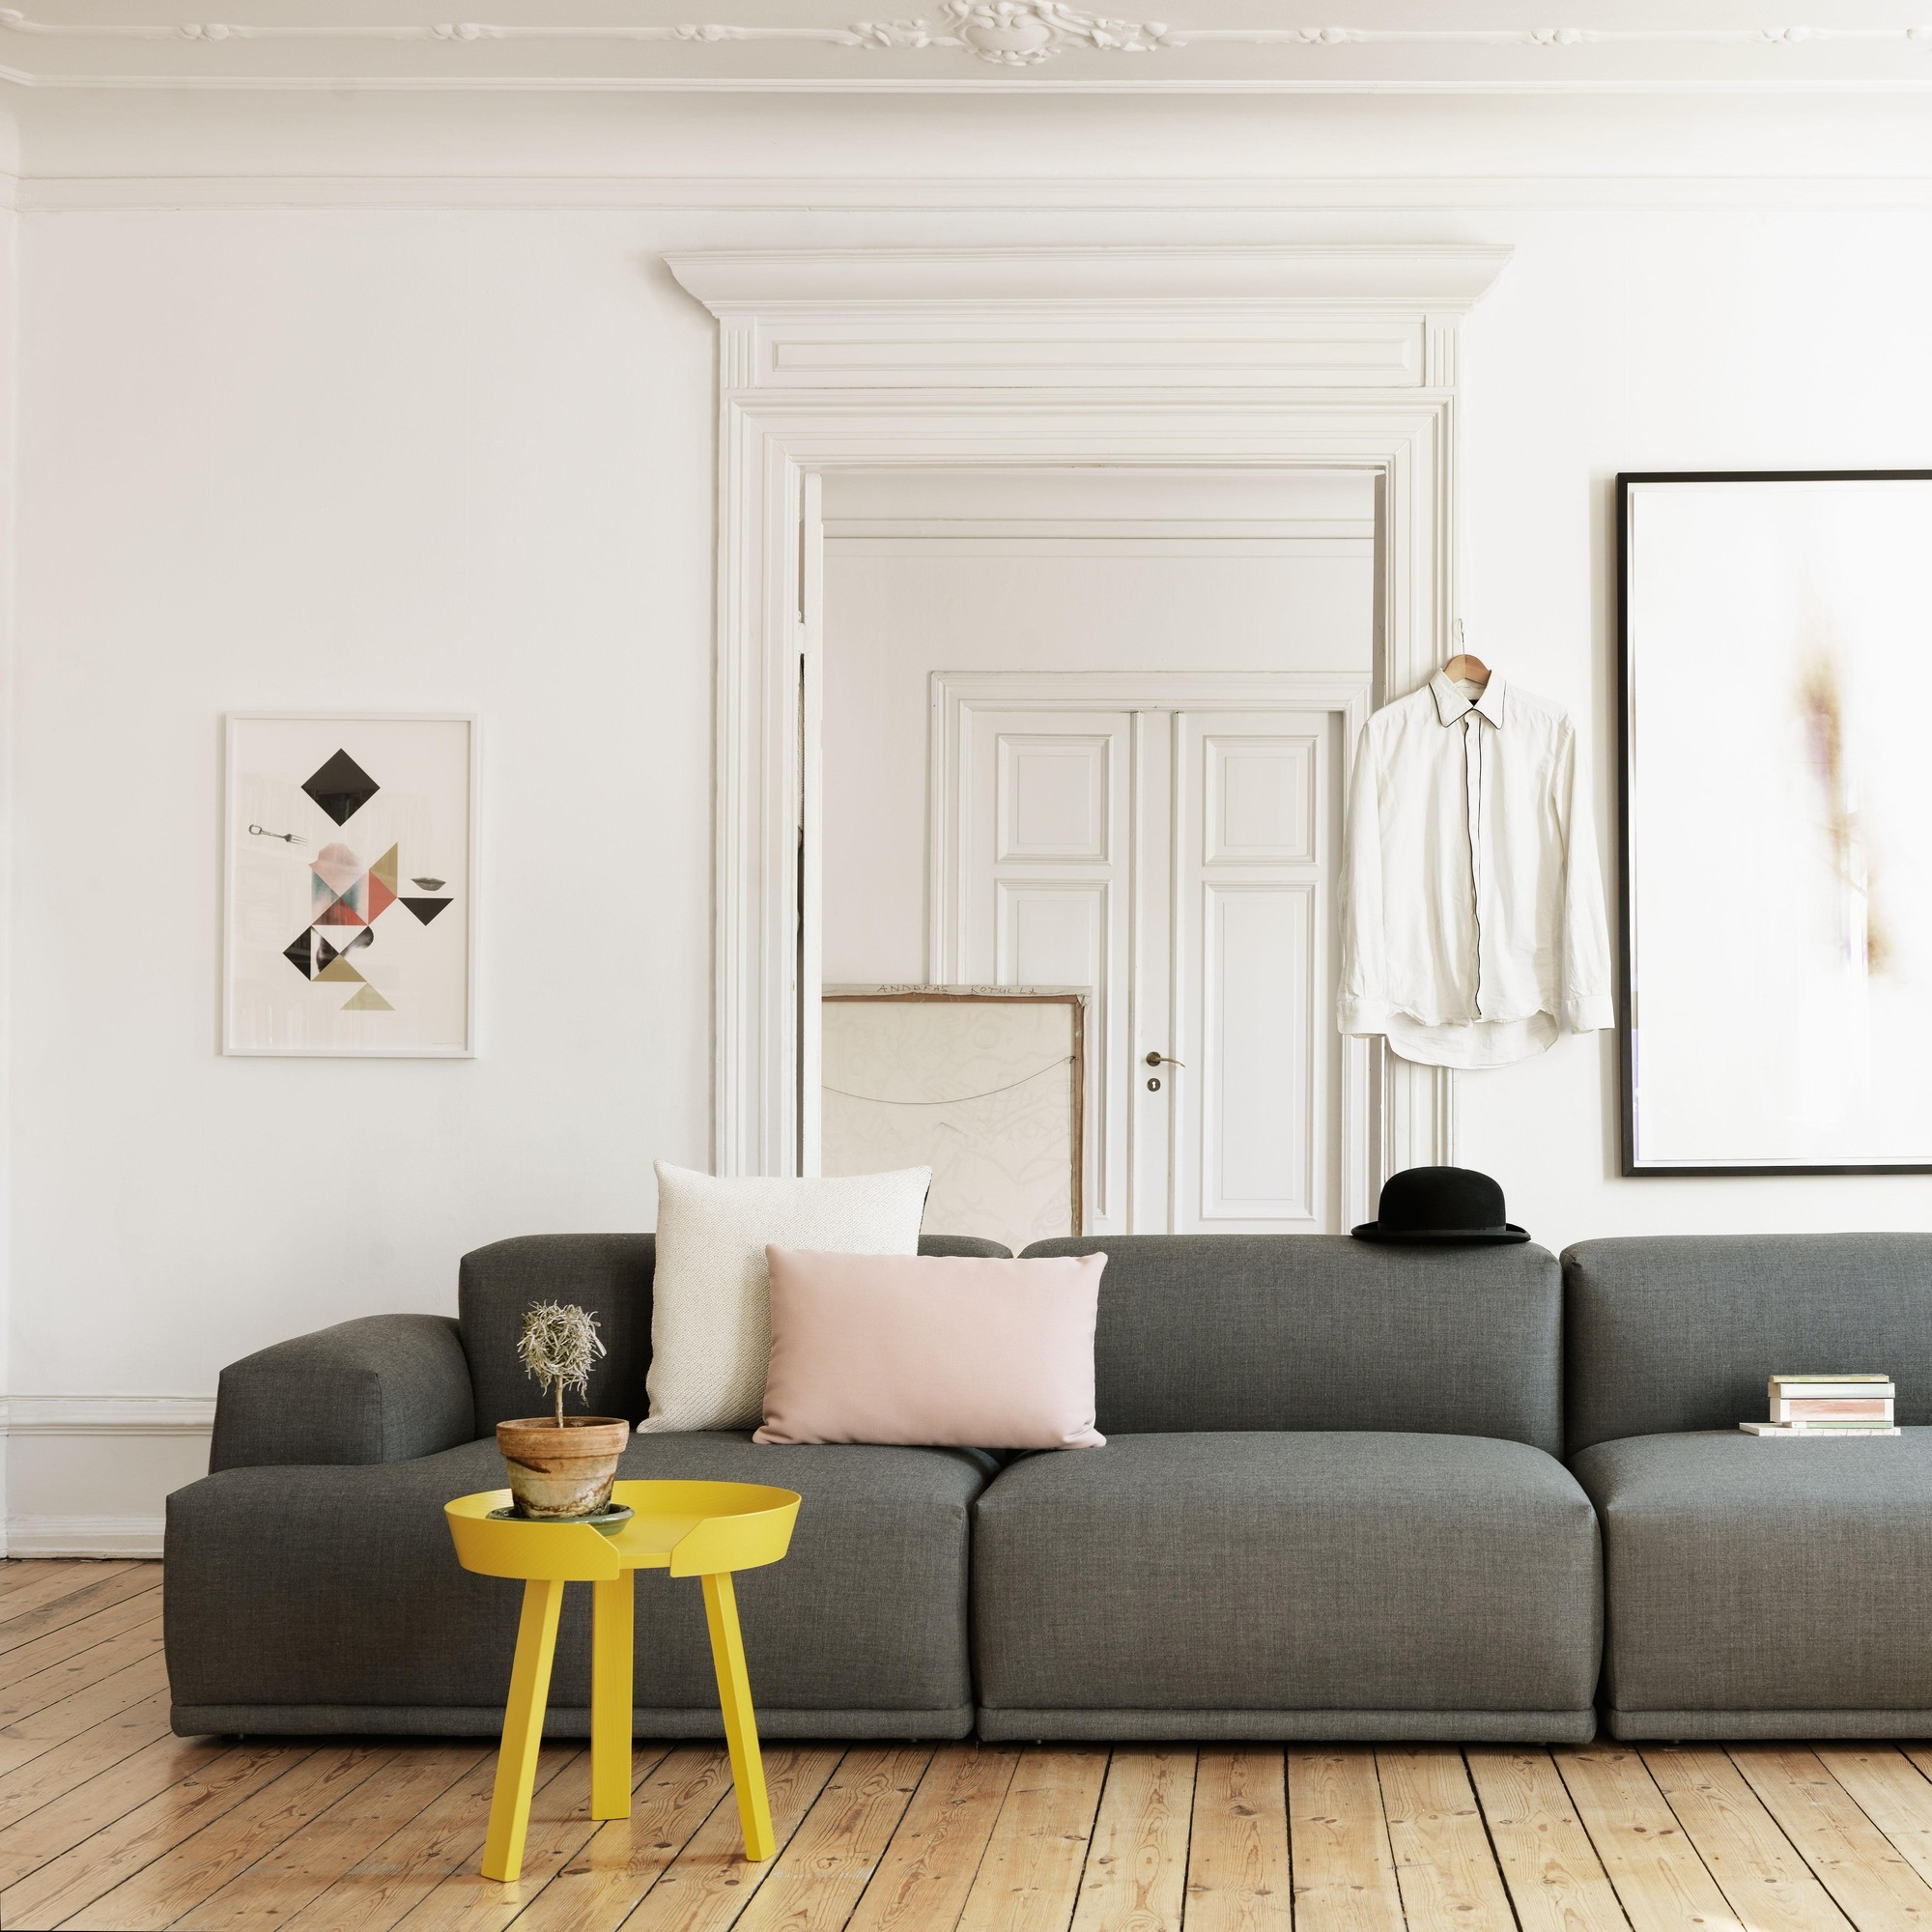 Full Size of Muuto Sofa Compose 2 Seater Airy Sofabord Large Connect Pris Cecilie Manz Outline Dimensions Review Dba Rest System Oslo Center Elements Ambientedirect Big Mit Sofa Muuto Sofa